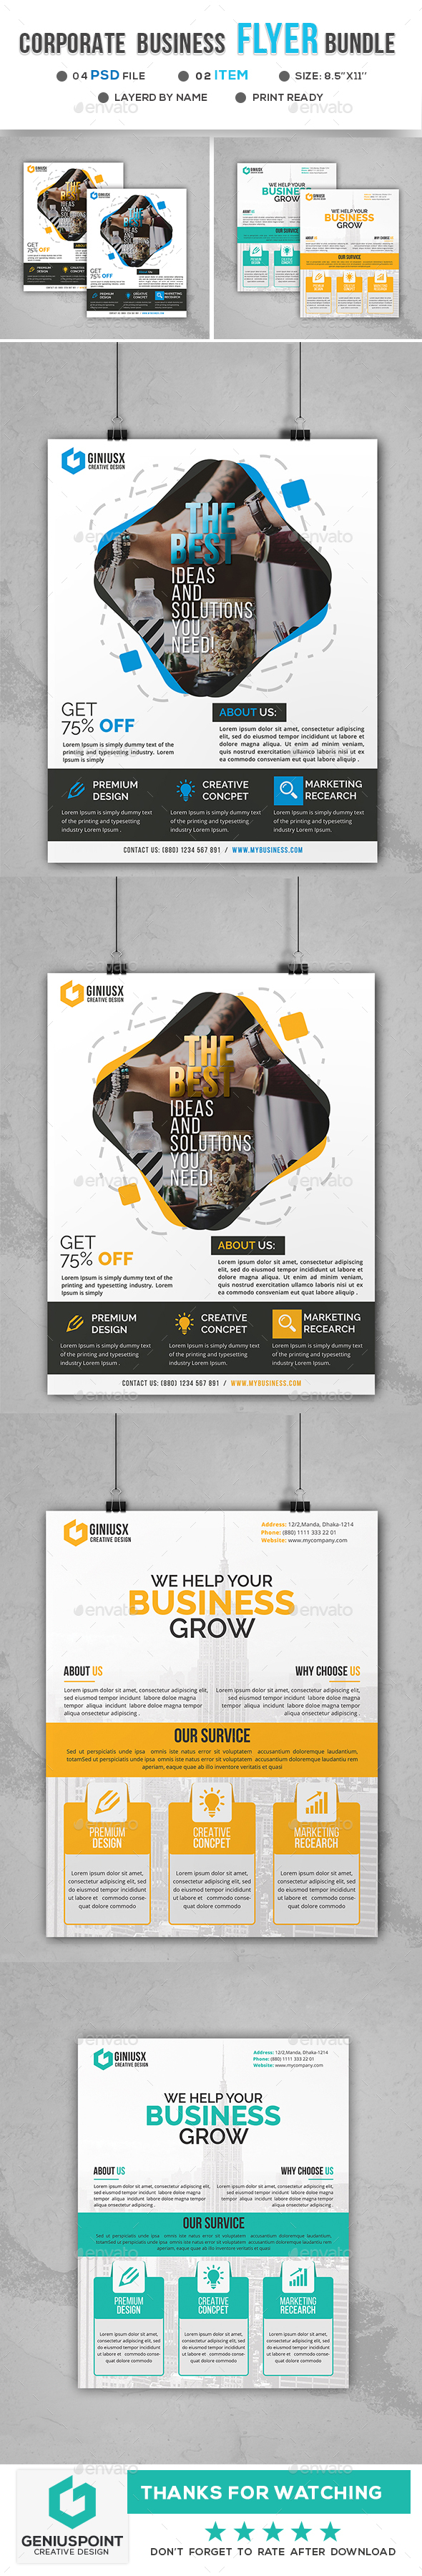 GraphicRiver Corporate Business Flyer Bundle 20974613